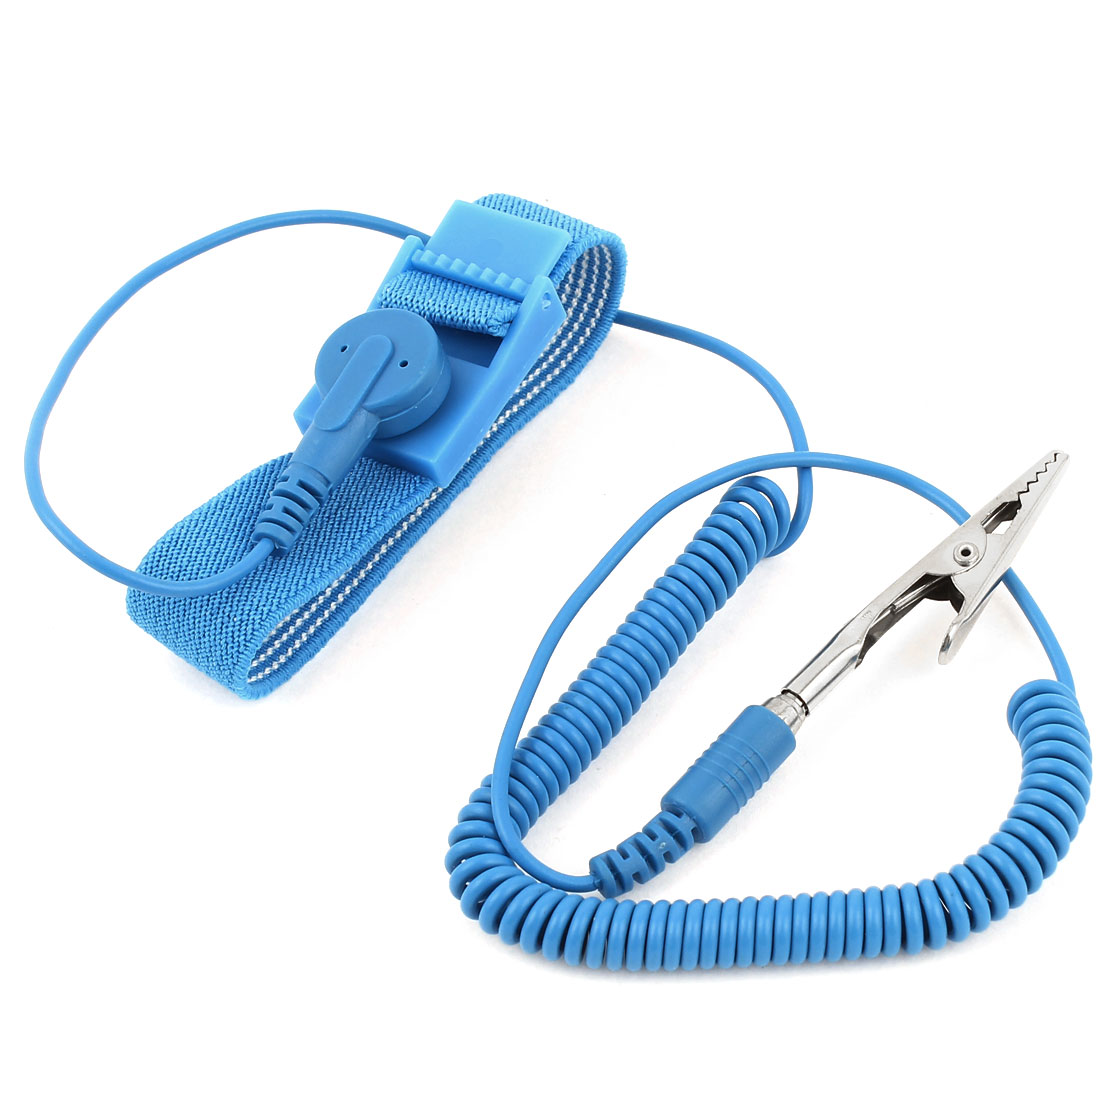 Coil Cable Alligator Clip Grounding Anti-Static Wrist Strap Wristband Blue